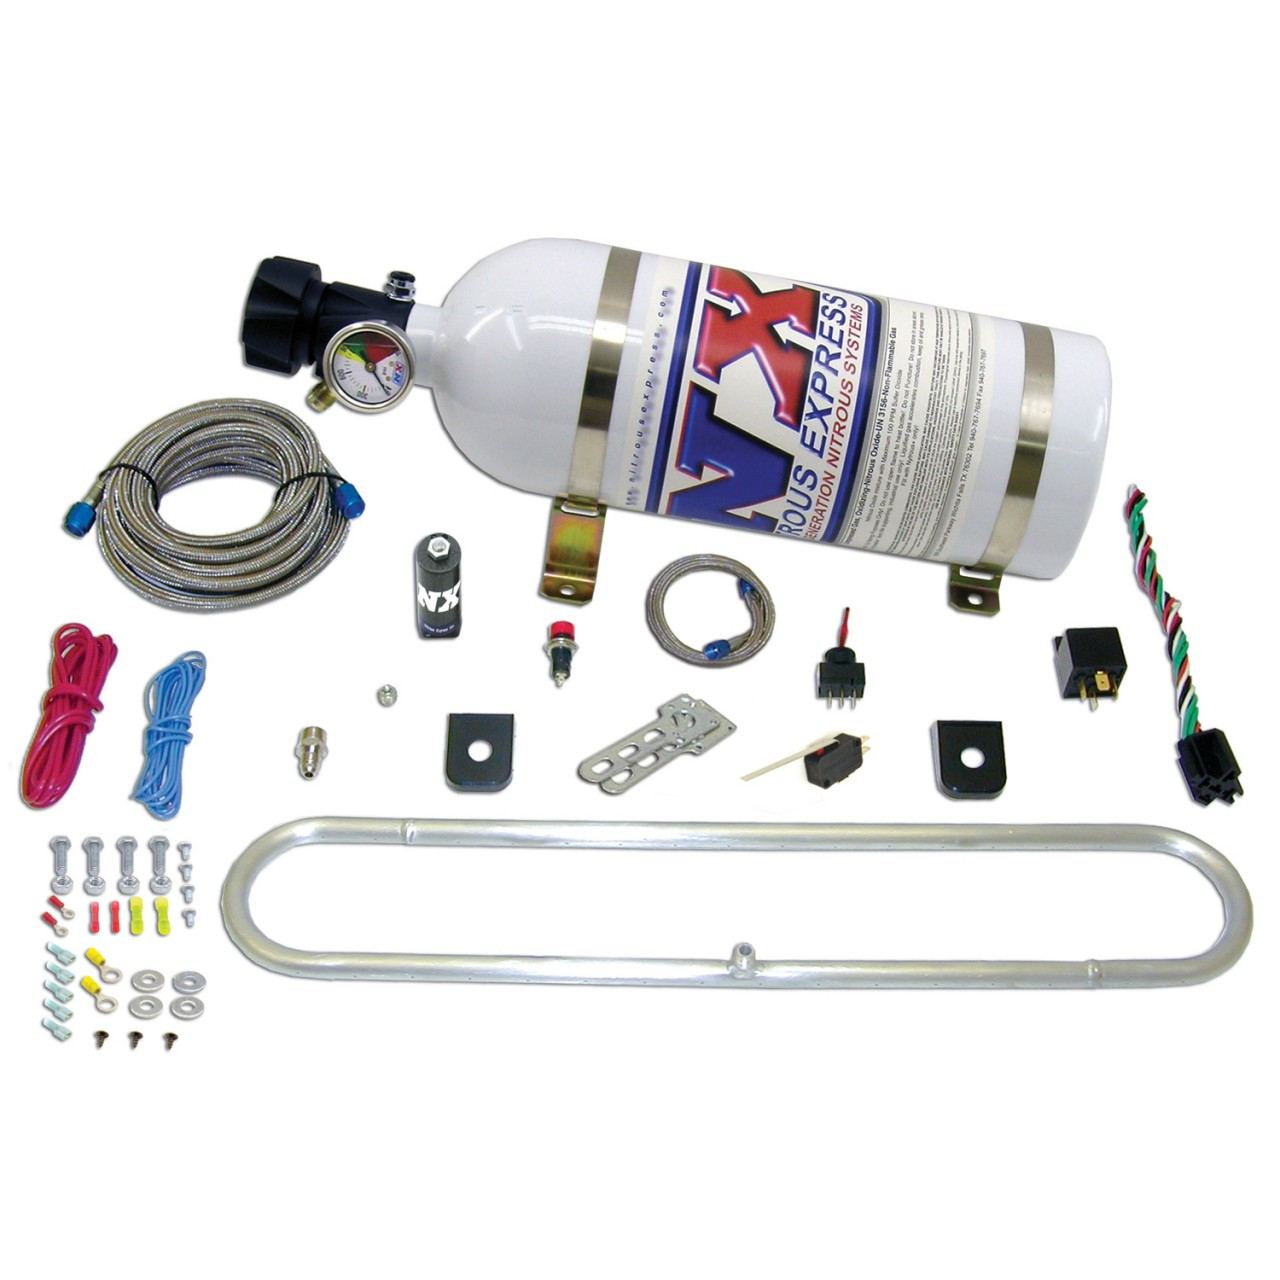 N-TERCOOLER system for CO2 WITH 5LB BOTTLE (20000CR-05)